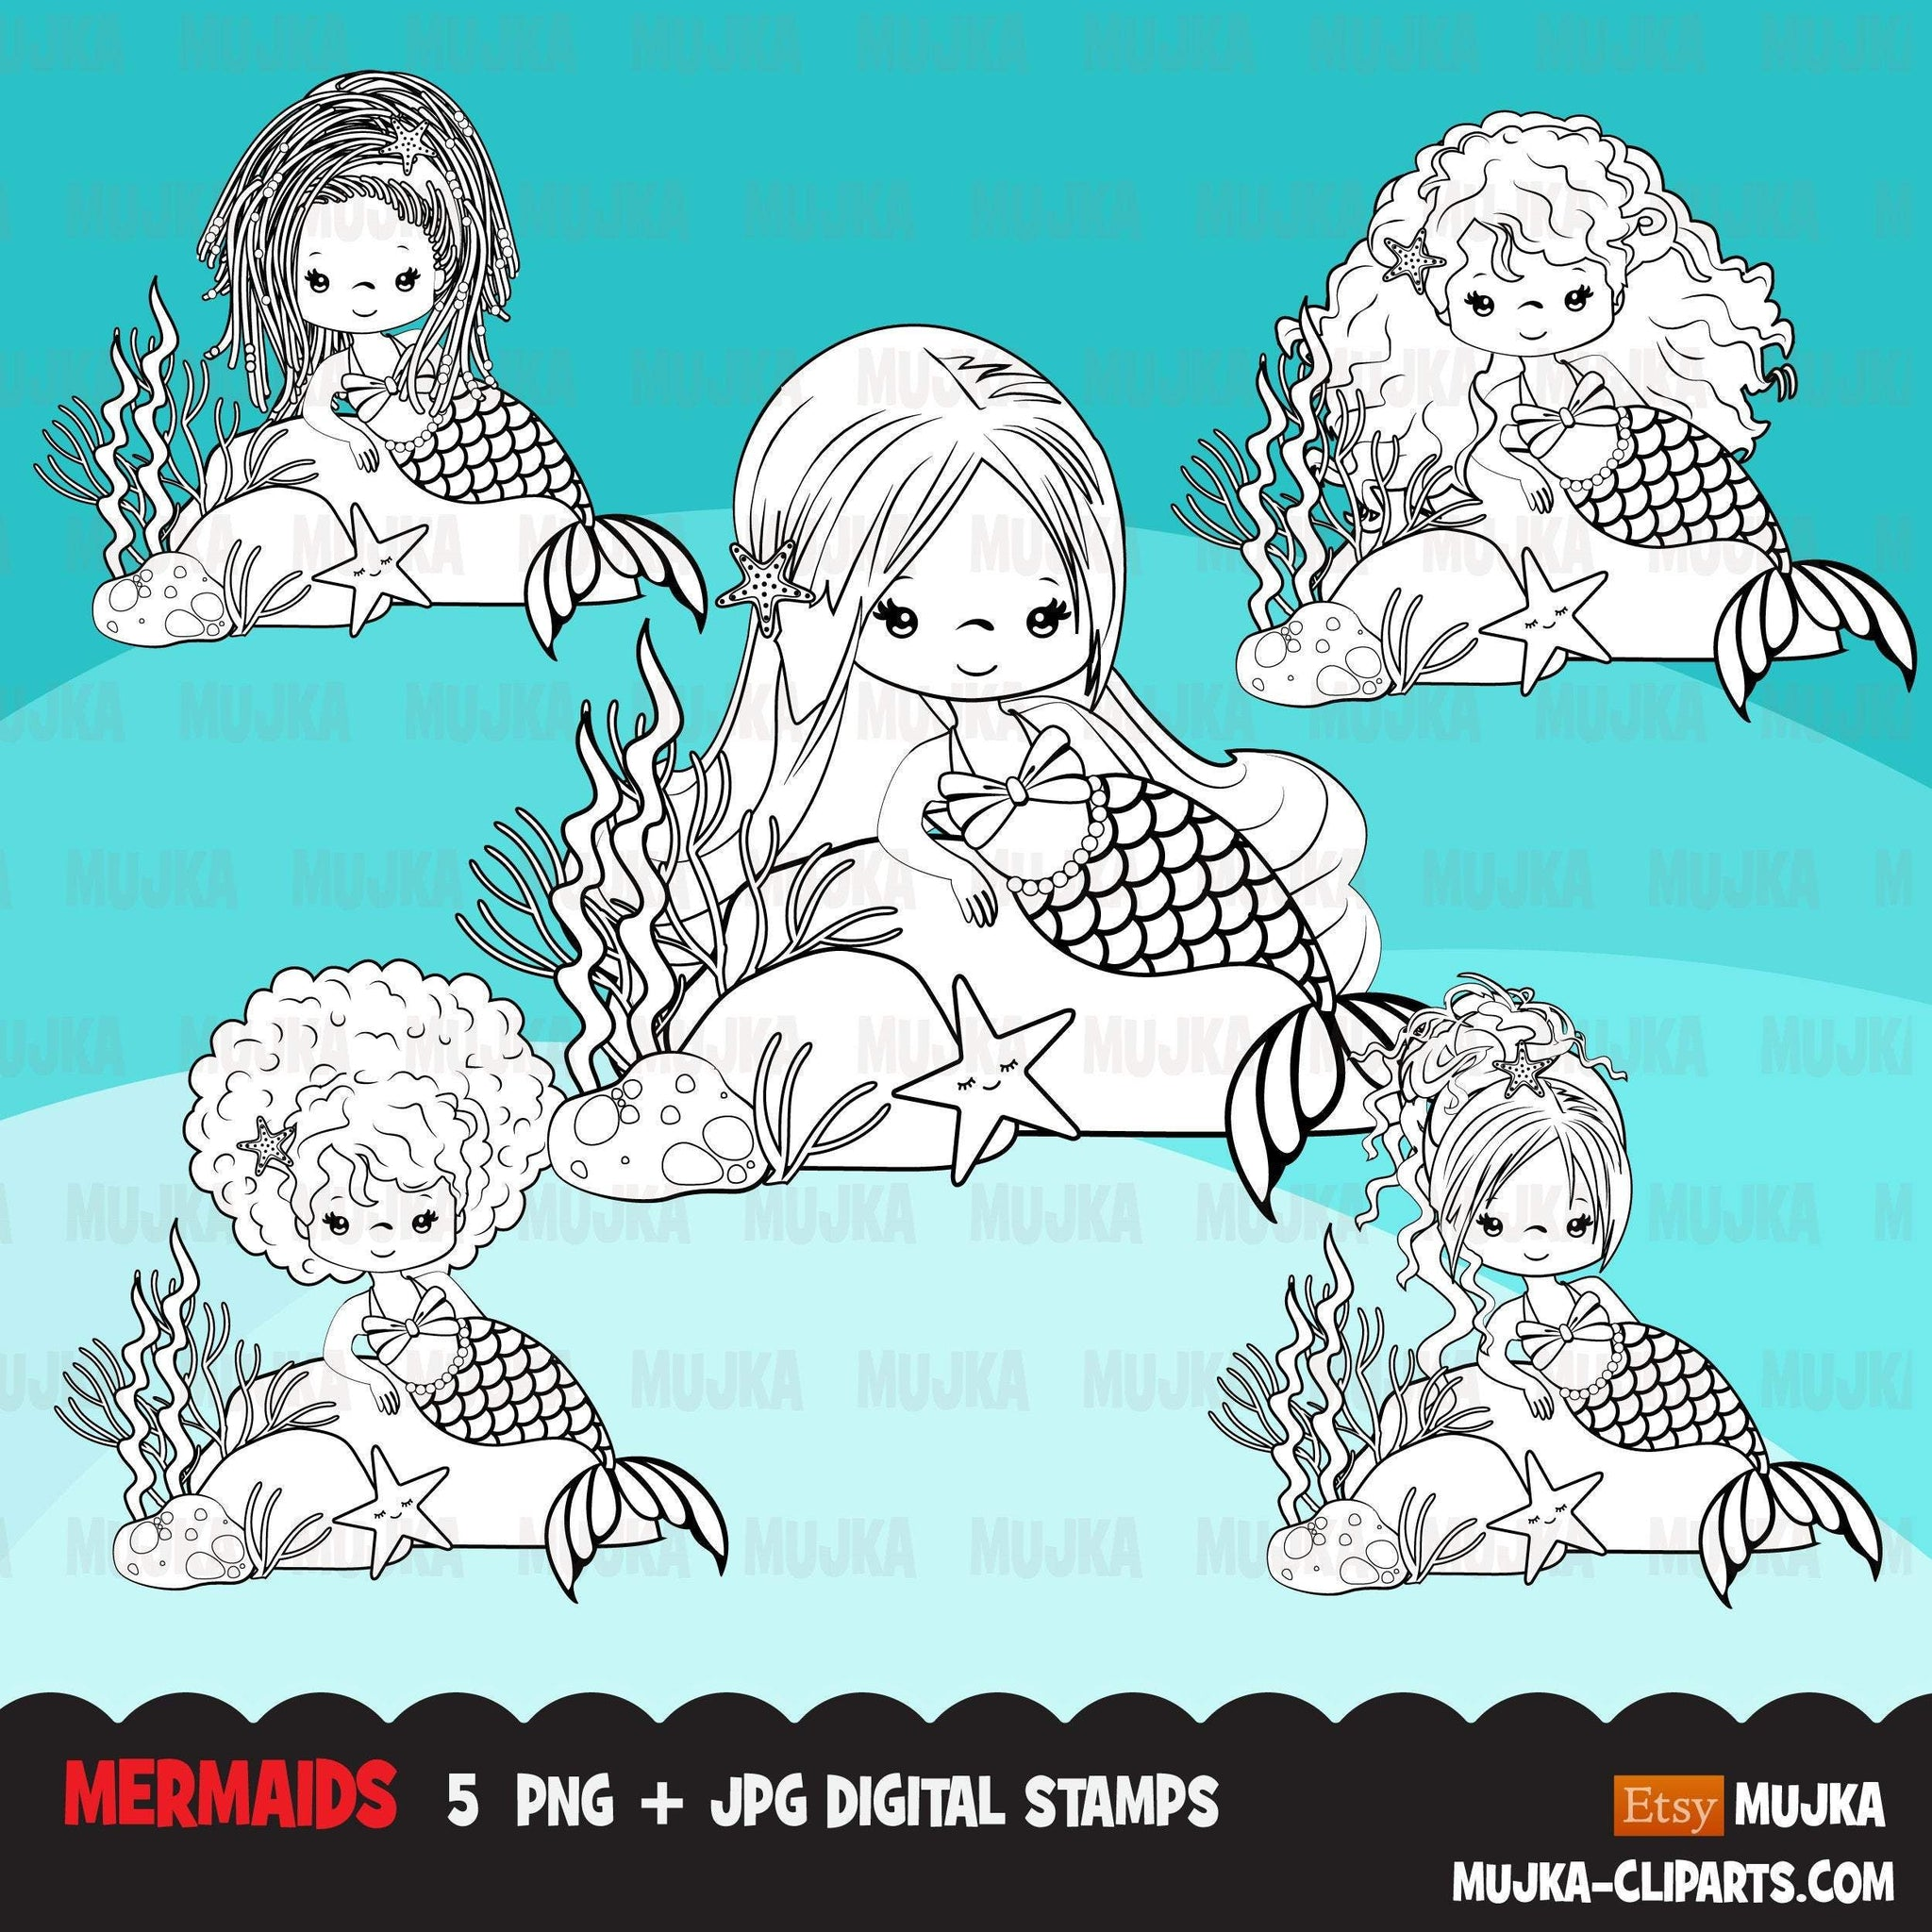 Mermaid Digital stamps, black & white marine graphics, black princess coloring book art outline clipart